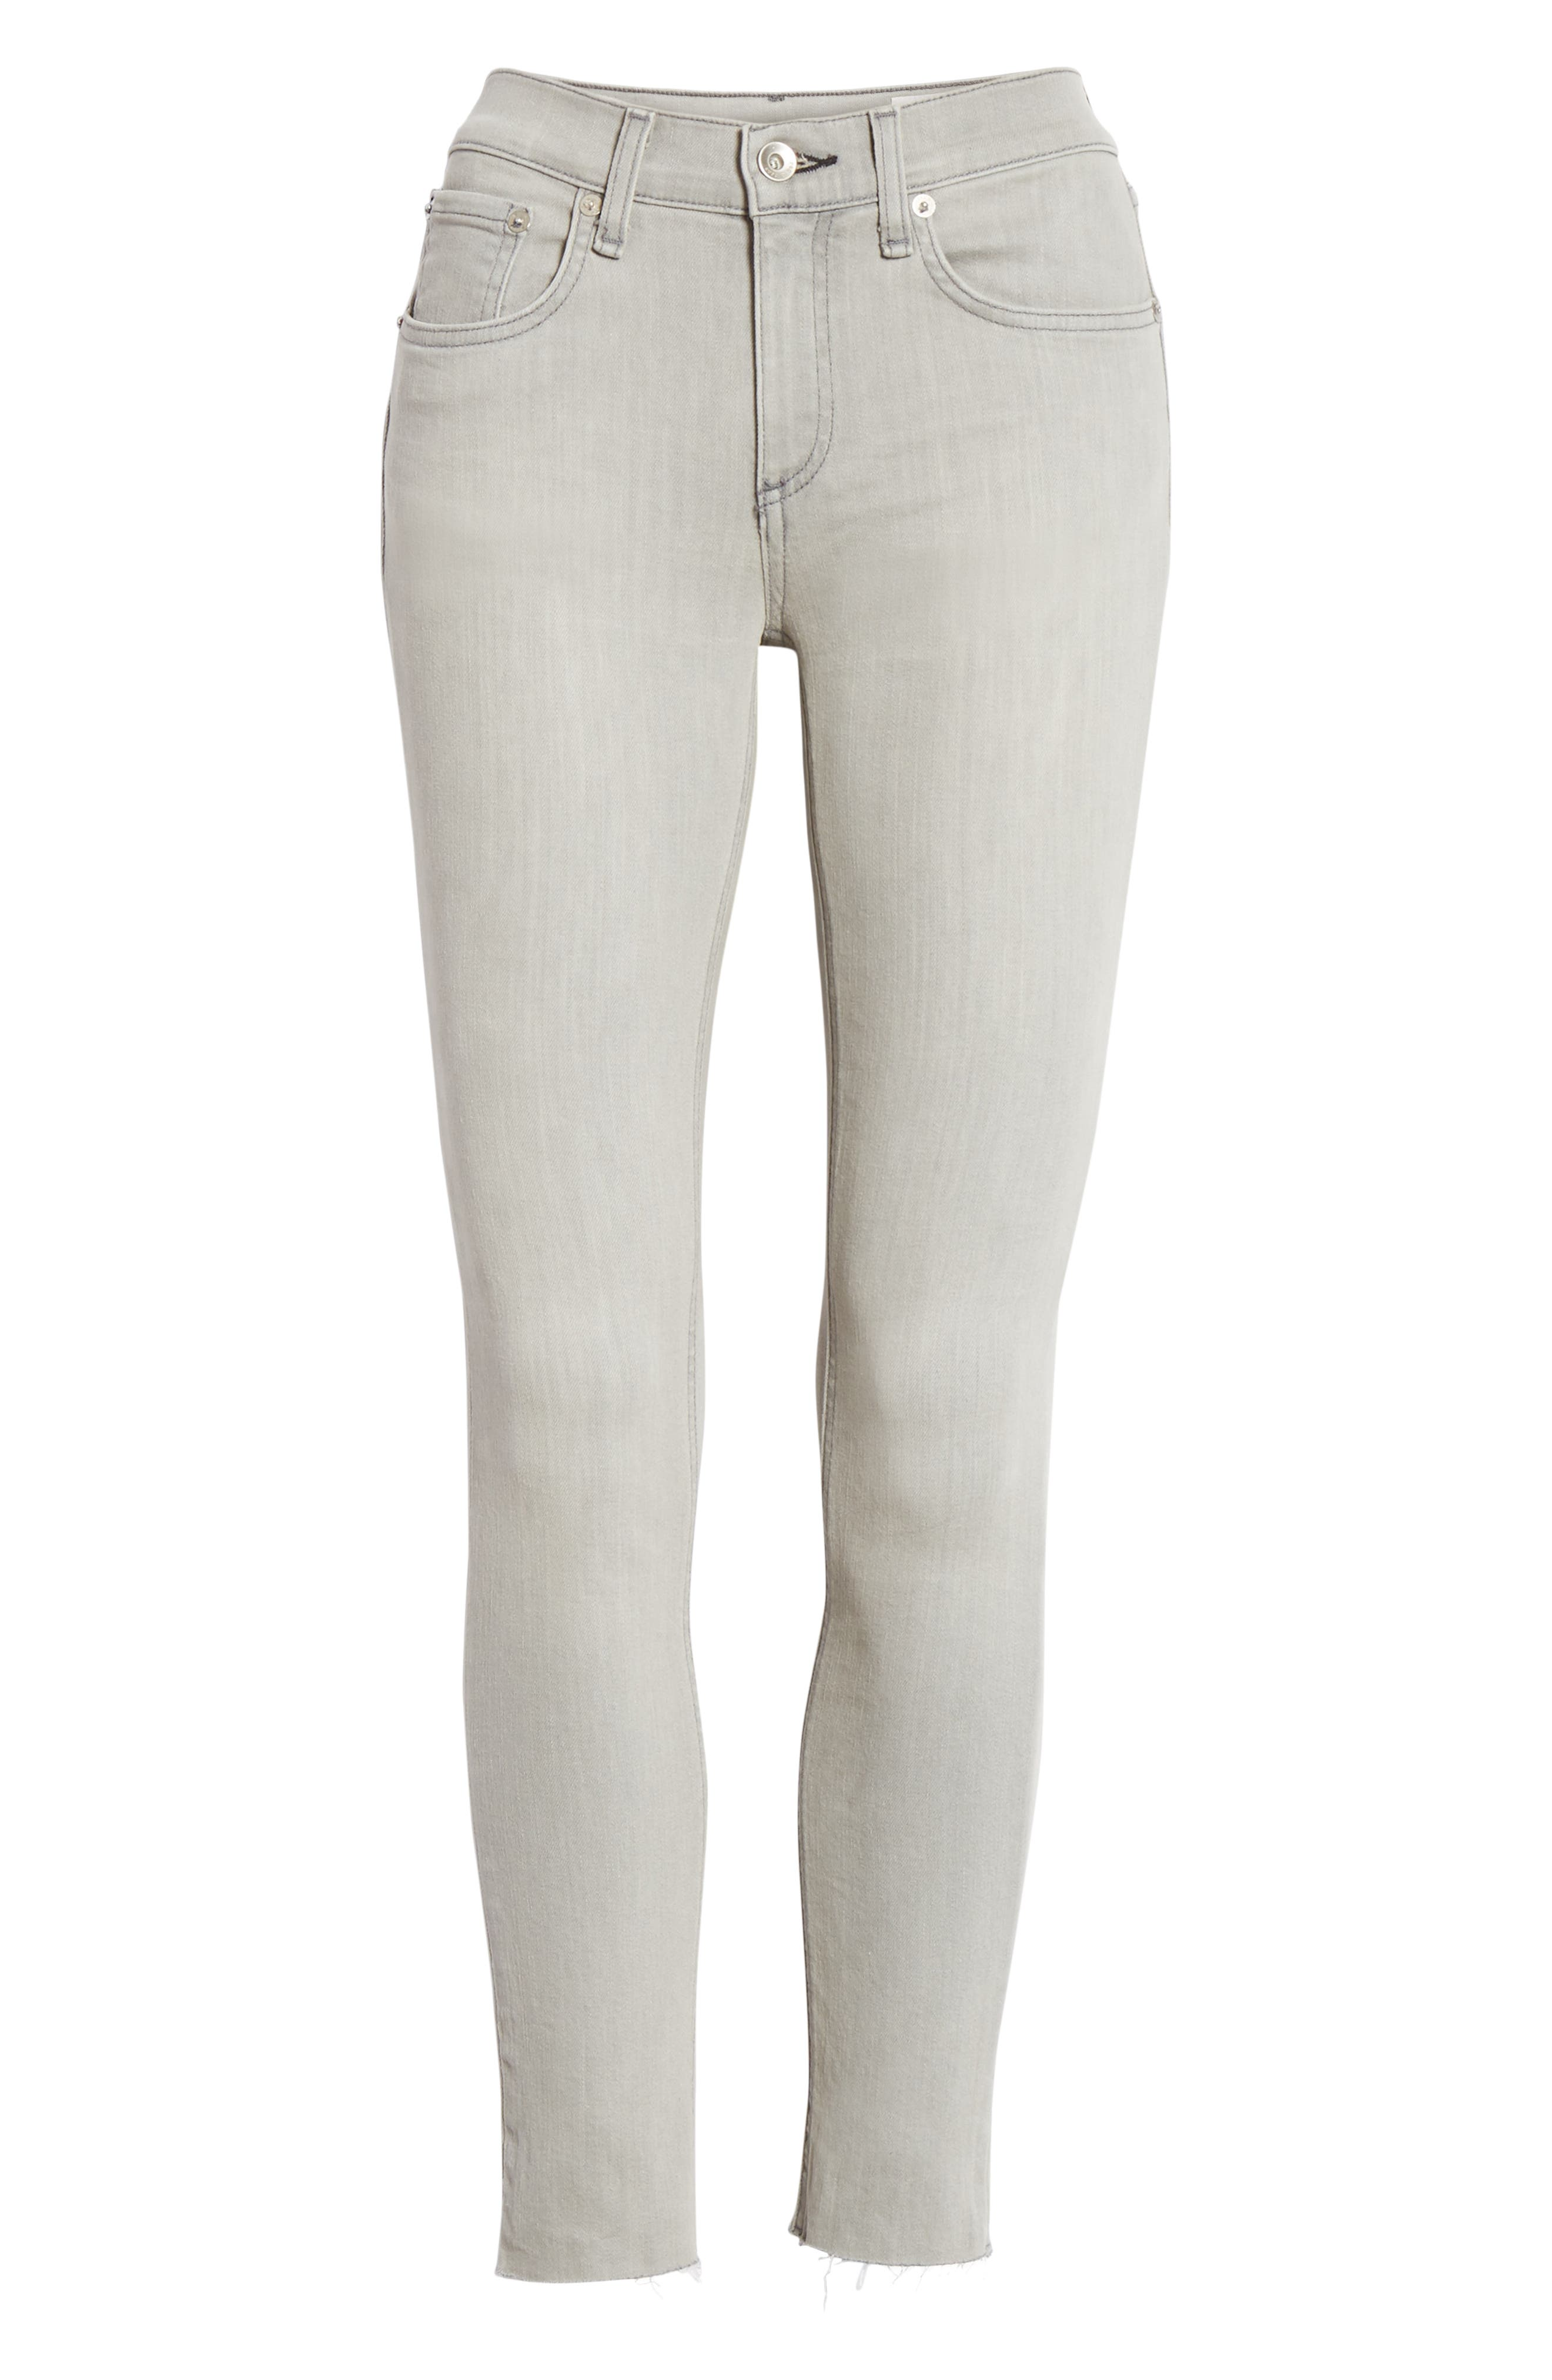 Ankle Skinny Jeans,                             Alternate thumbnail 7, color,                             020